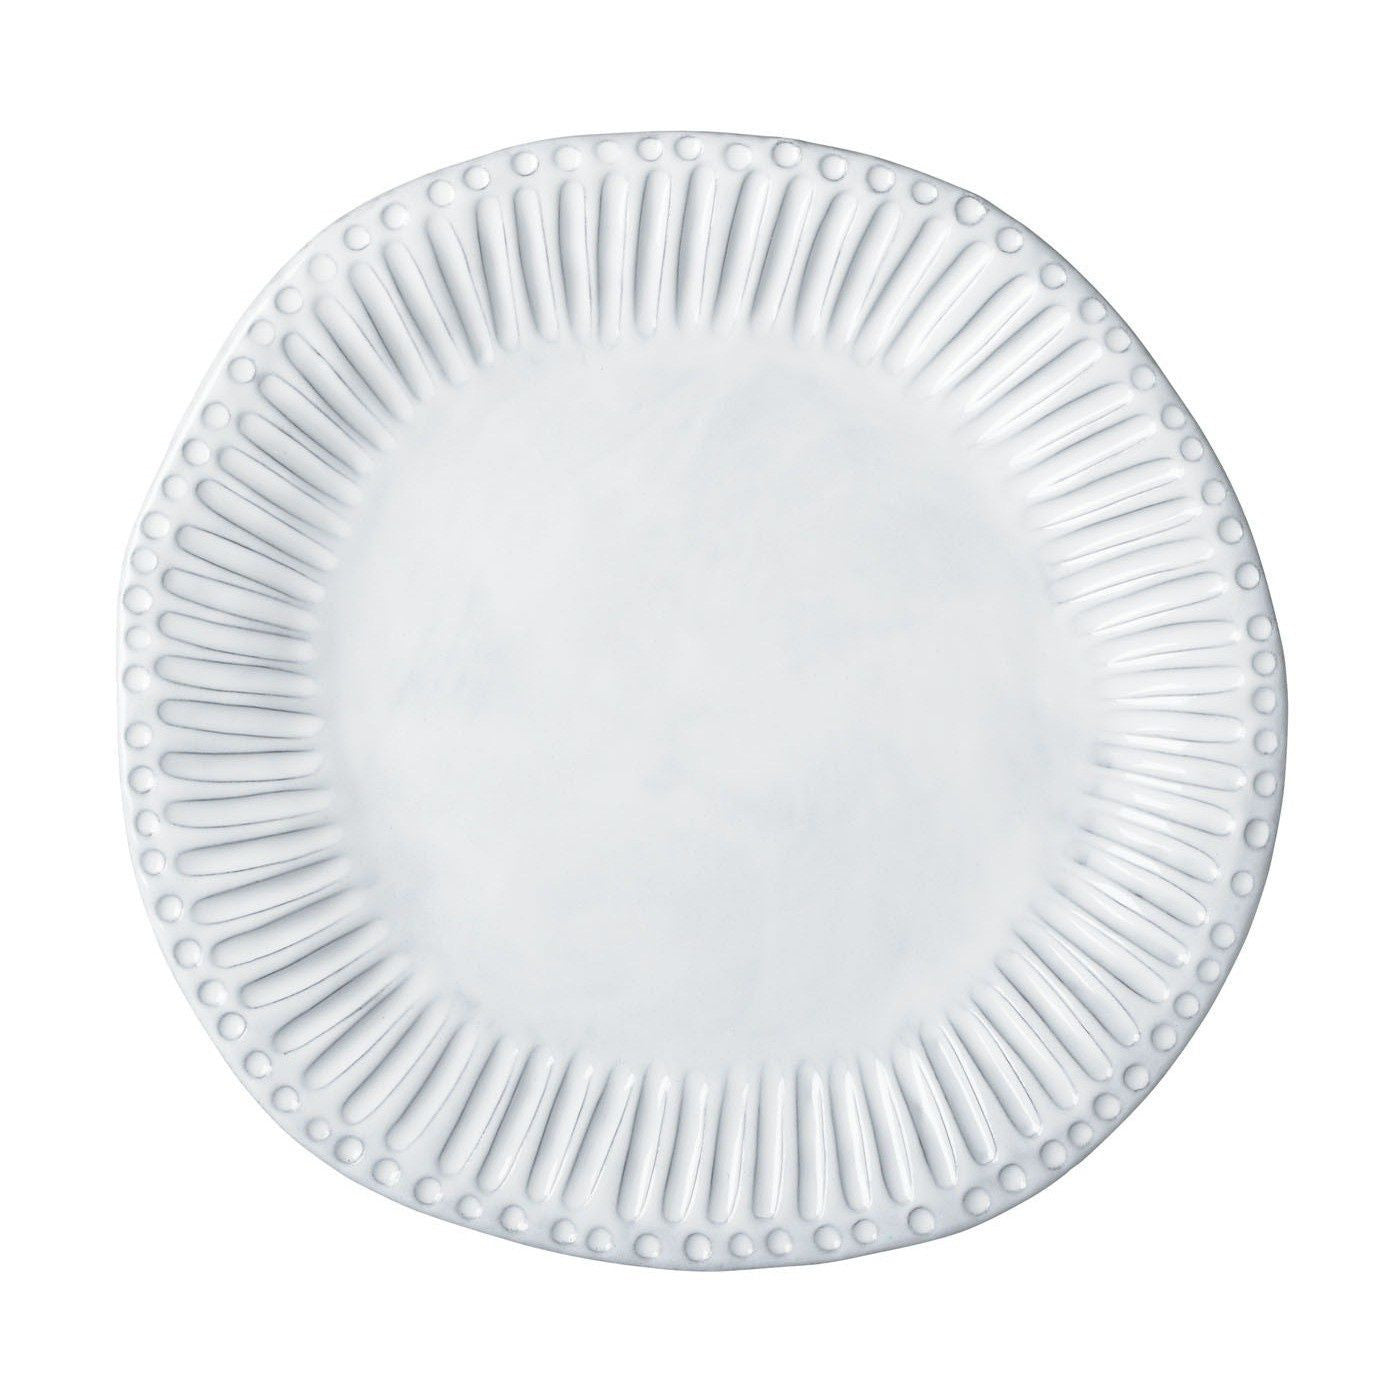 Incanto White Stripe American Dinner Plate